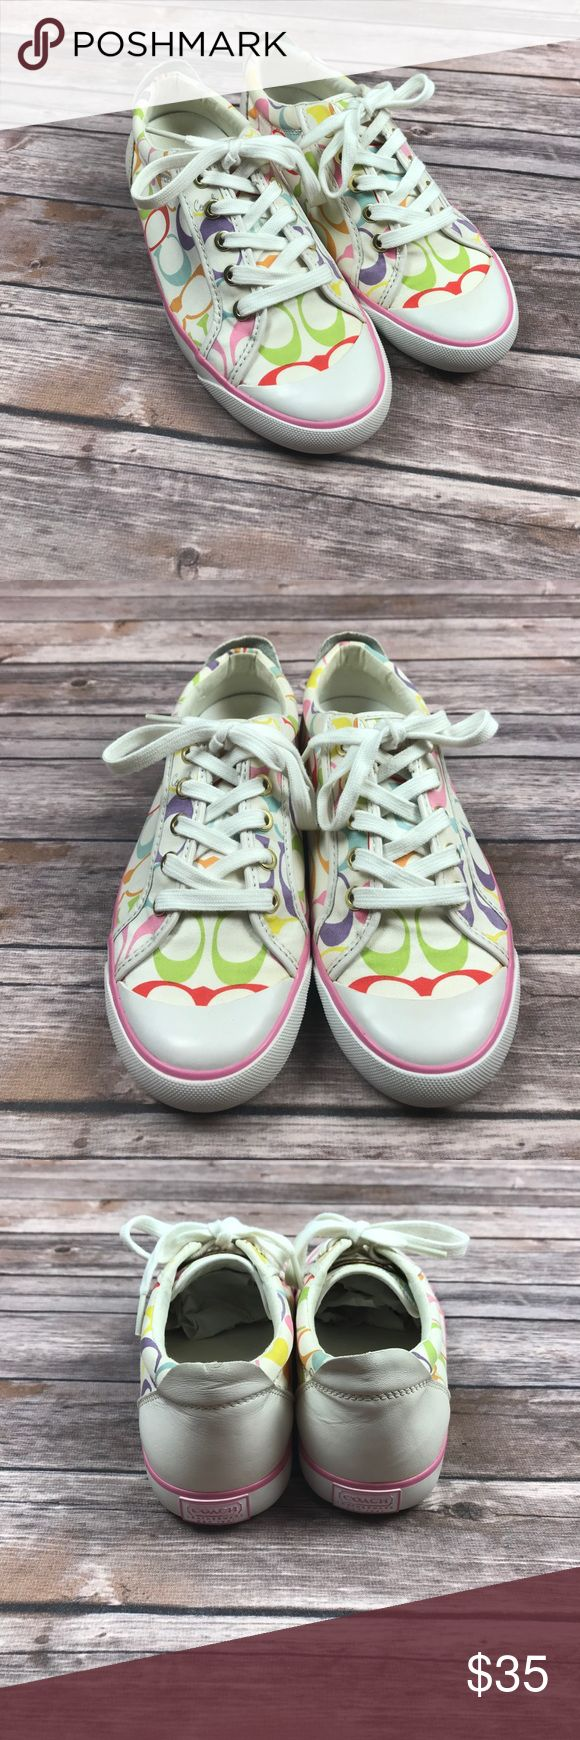 🌈 White and Rainbow Coach Tennis Shoes Size 7 -Coach Tennis Shoes Coach Shoes Sneakers